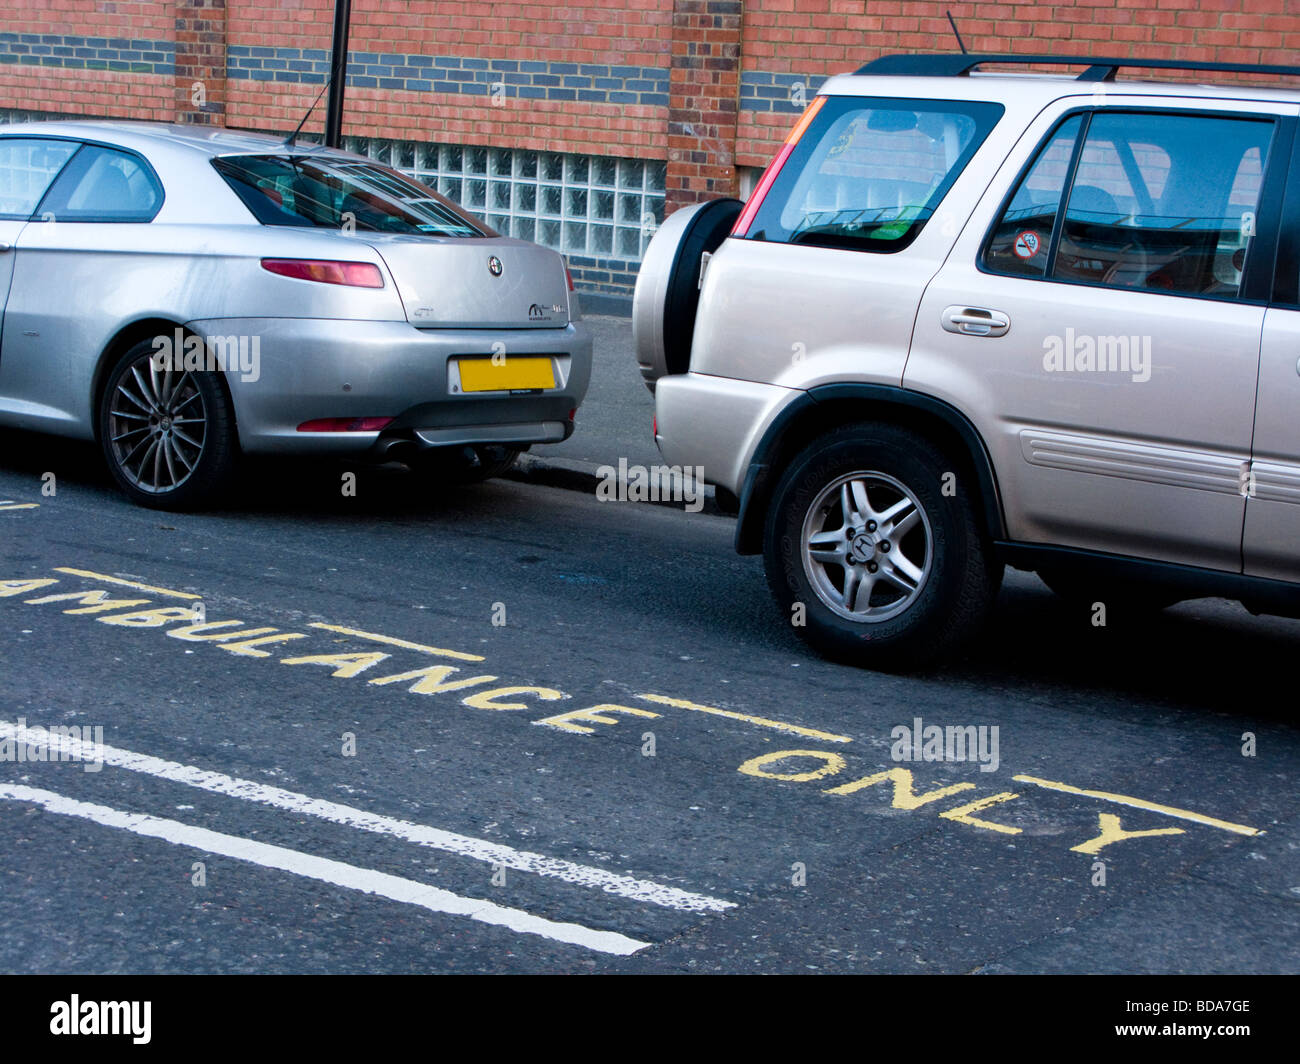 Two cars parked on Ambulance Only bay, London, UK - Stock Image